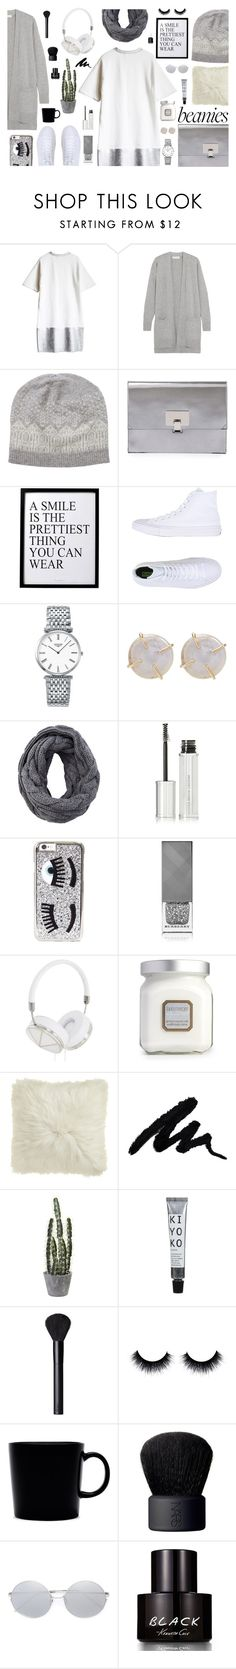 """""""Beanies (CONTEST ENTRY)"""" by jafashions ❤ liked on Polyvore featuring MICHAEL Michael Kors, Pure Collection, Proenza Schouler, 3R Studios, Converse, Longines, Melissa Joy Manning, Givenchy, Chiara Ferragni and Burberry"""